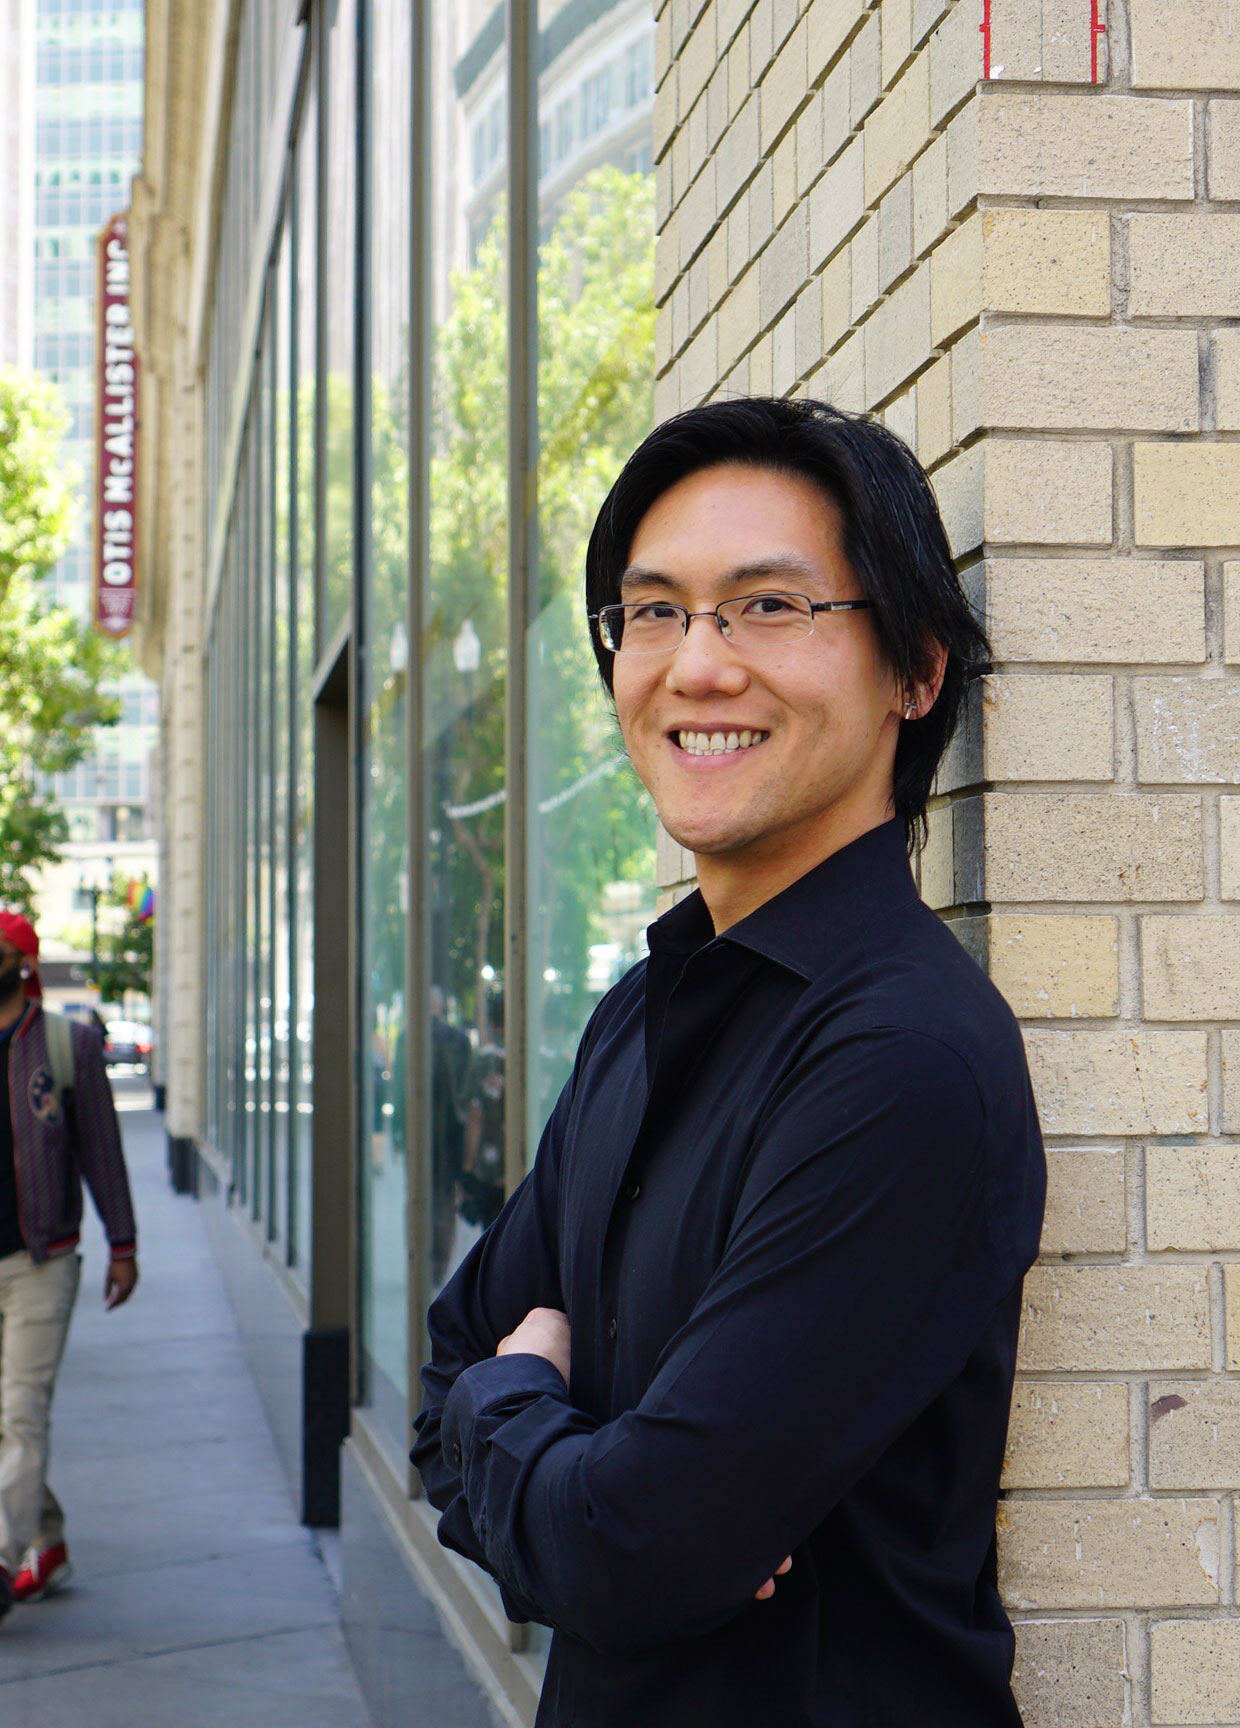 Randy Chung - CHIEF ARCHITECT & CO-FOUNDER, MISTER KRAKEN(GrowTreez Product suite, acquired Q4'18)Randy Chung is the Chief Architect of Treez, and is responsible for designing Treez' systems to be robust, secure, and scalable. With Treez' focus on becoming the platform to power the cannabis industry, it is imperative for the software to be built with tomorrow's needs in mind, so it can handle the market's growth, changing needs, and unique challenges in regulation.Randy's career has encompassed both enterprise-scale and startup-scale endeavors. He started at Amazon, where he was a software developer on the retail website team. His work there included building services that run at Amazon's global scale, and contributing towards patents for Amazon. After leaving Amazon, he founded his first startup, Zhurosoft, a mobile game company that was self-bootstrapped and grew to seven figure ARR. Afterward, he founded Mister Kraken, and grew the company to service 25% of Washington state's cultivation/manufacturing market.Randy holds a BS in Electrical Engineering and Computer Science from UC Berkeley.